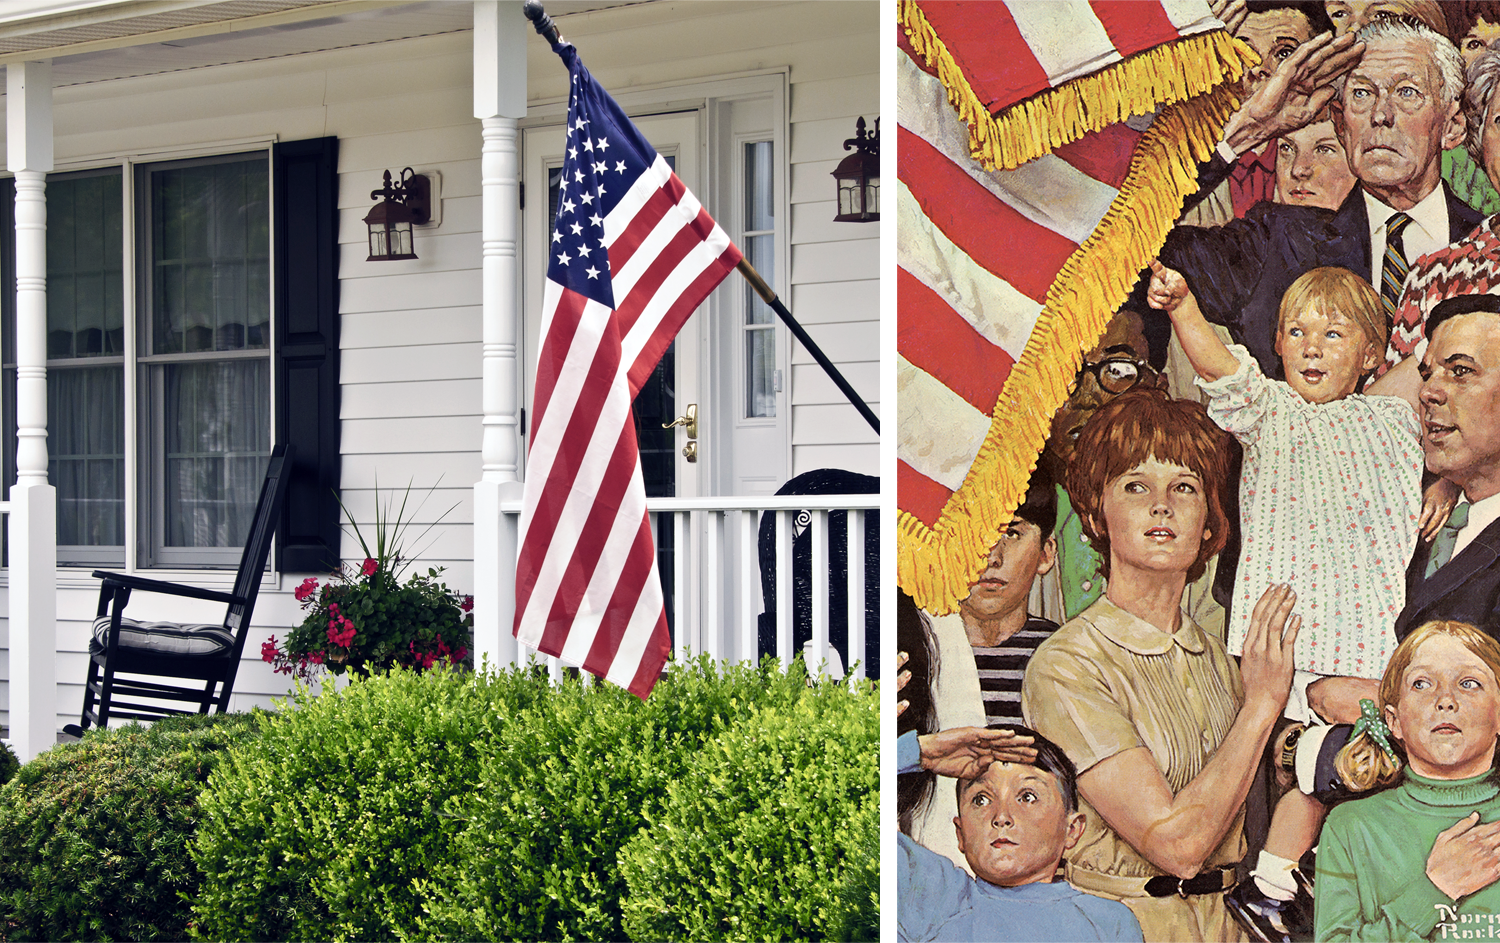 Norman Rockwell Patriotism, Image and Illustration